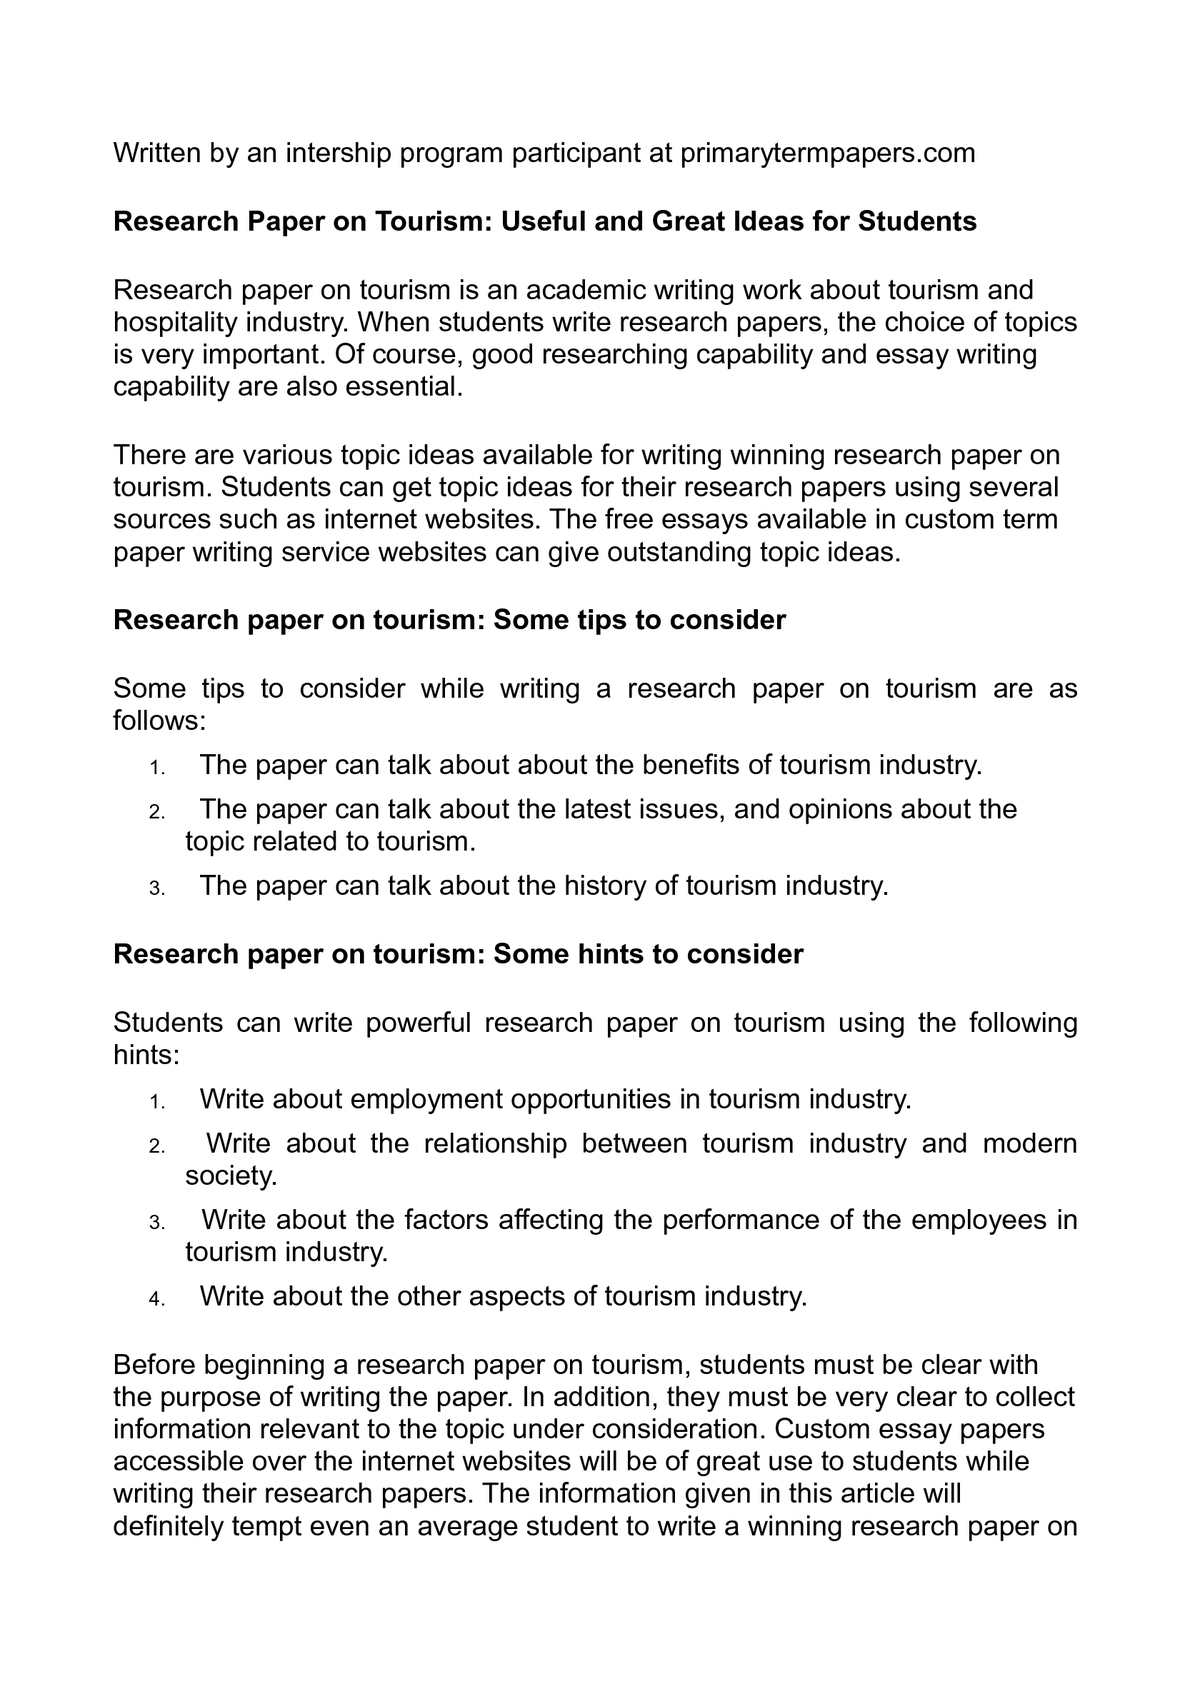 006 Topics To Write Research Paper Stupendous A History On Economics Psychology Full